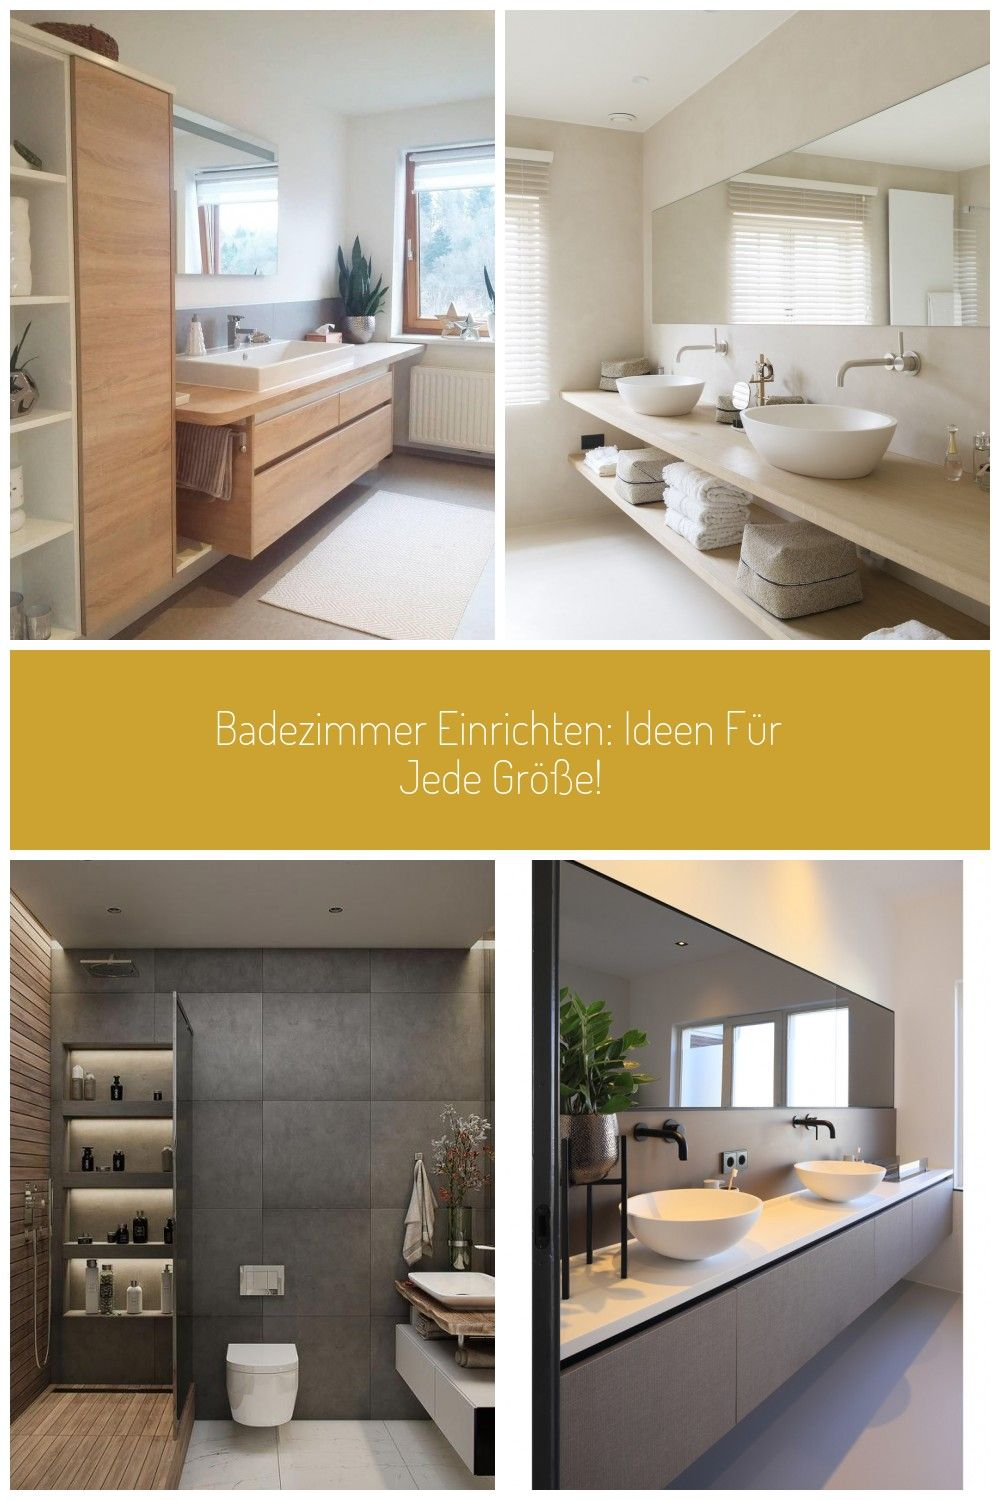 Fancy A New Bathroom With A Feel Good Guarantee Great Bathroom Furniture And Living Ideas To Furnish Your Own Bathroom With Couch Ma In 2020 Innenausstattung Badezimmer